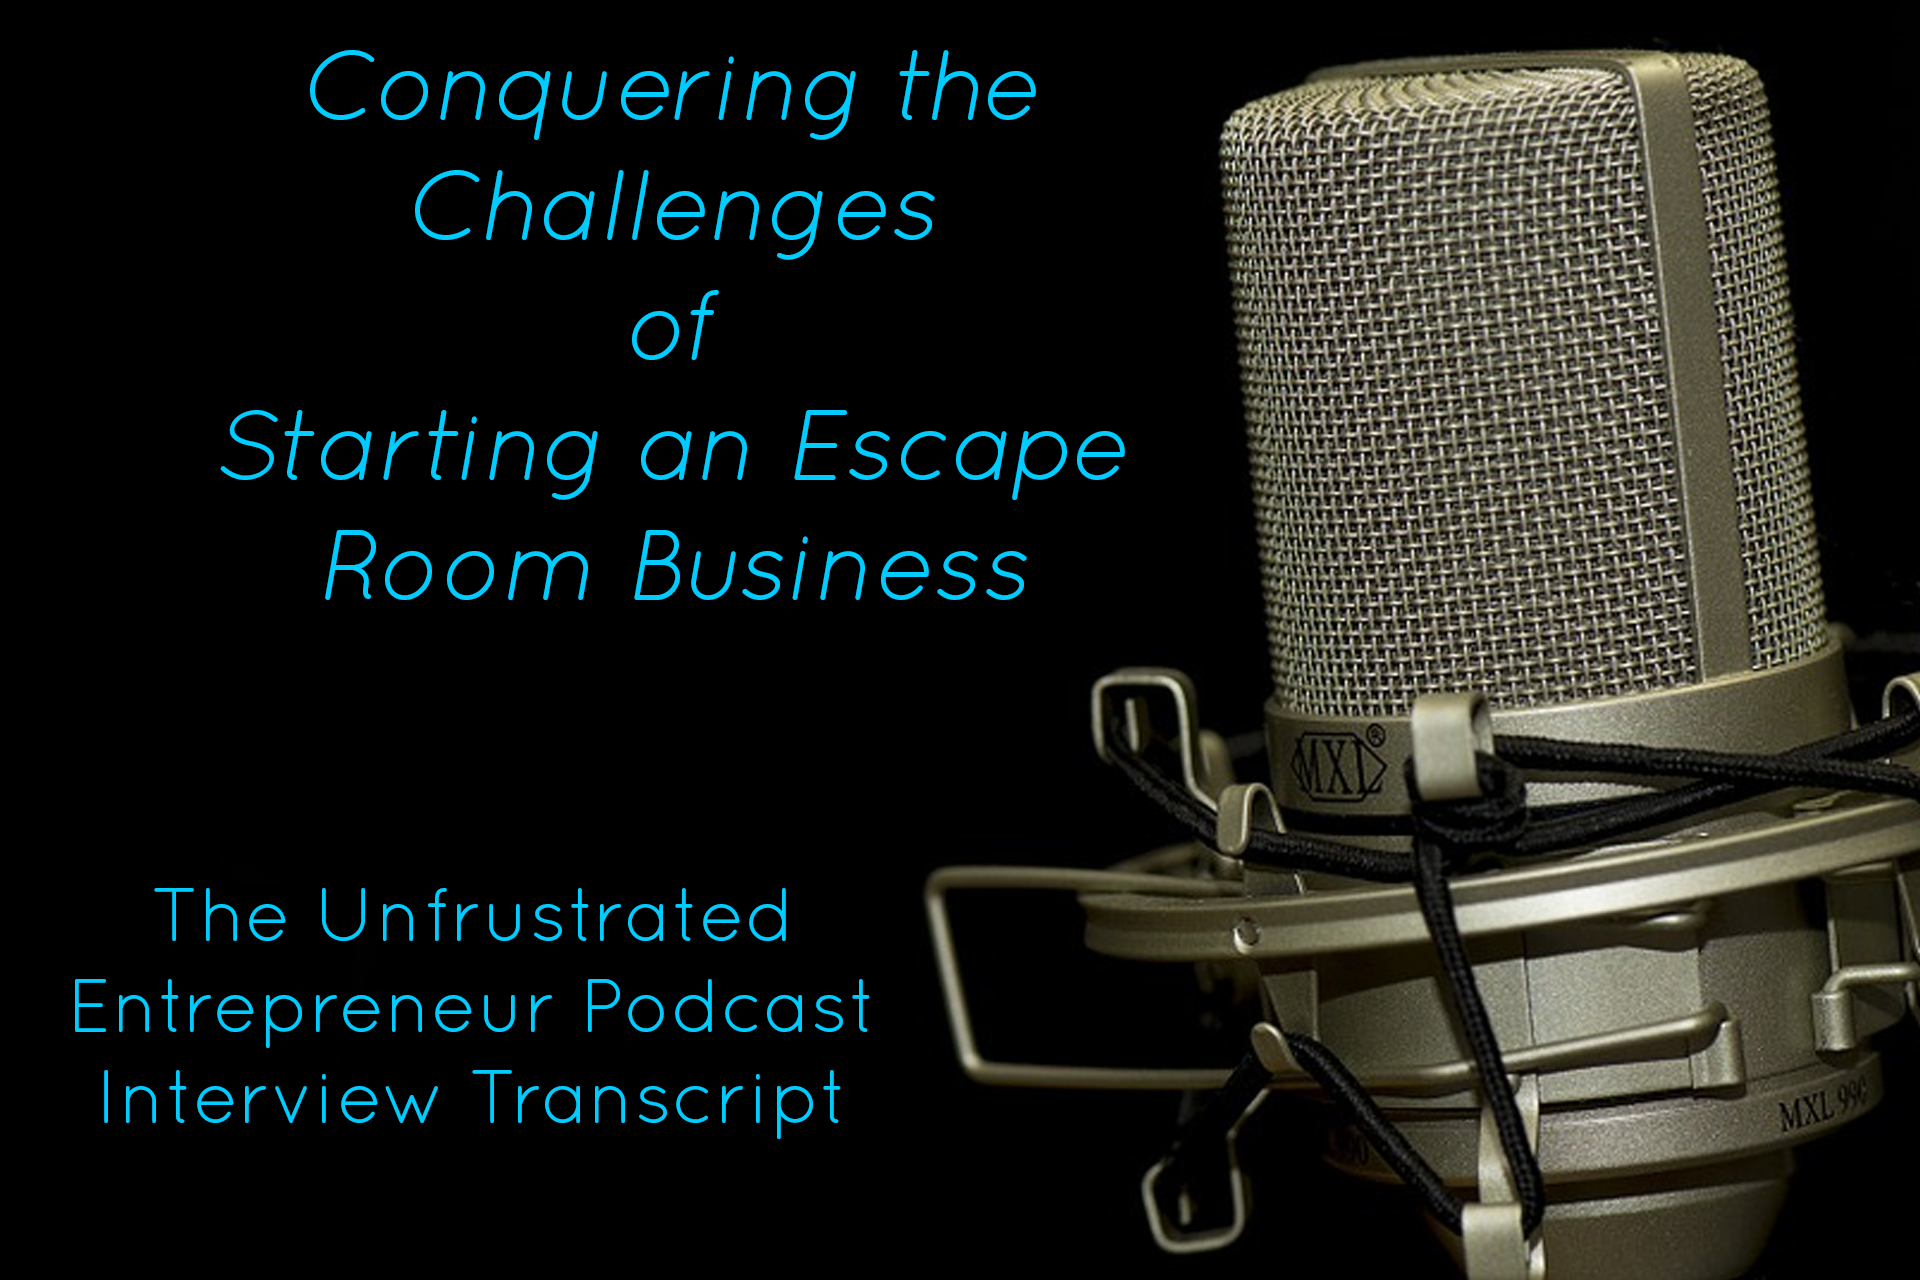 Conquering the Challenges of Starting an Escape Room Business. The Unfrustrated Entrepreneur Podcast interviews Brian Vinciguerra the Owner of Cracked it! Escape Games. An Escape Room and Virtual Reality arcade in Jacksonville, North Carolina.